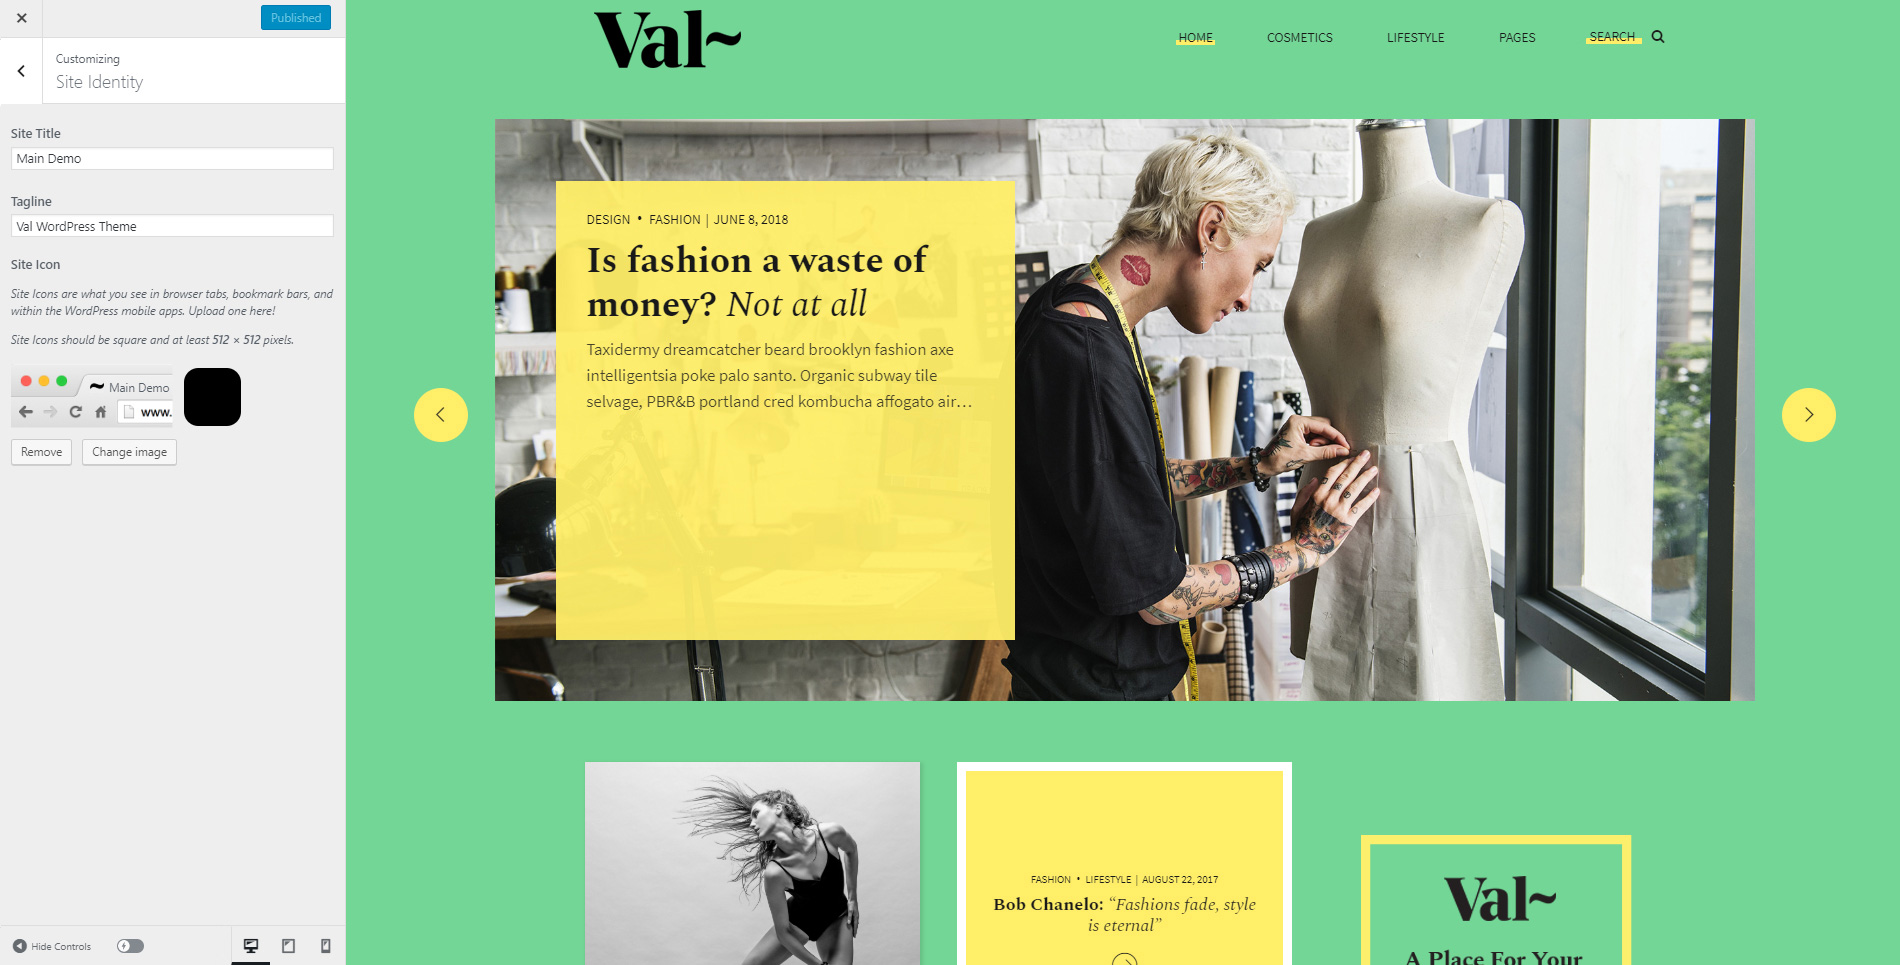 http://documentation.bold-themes.com/val/wp-content/uploads/sites/36/2018/12/val-customize-04.jpg